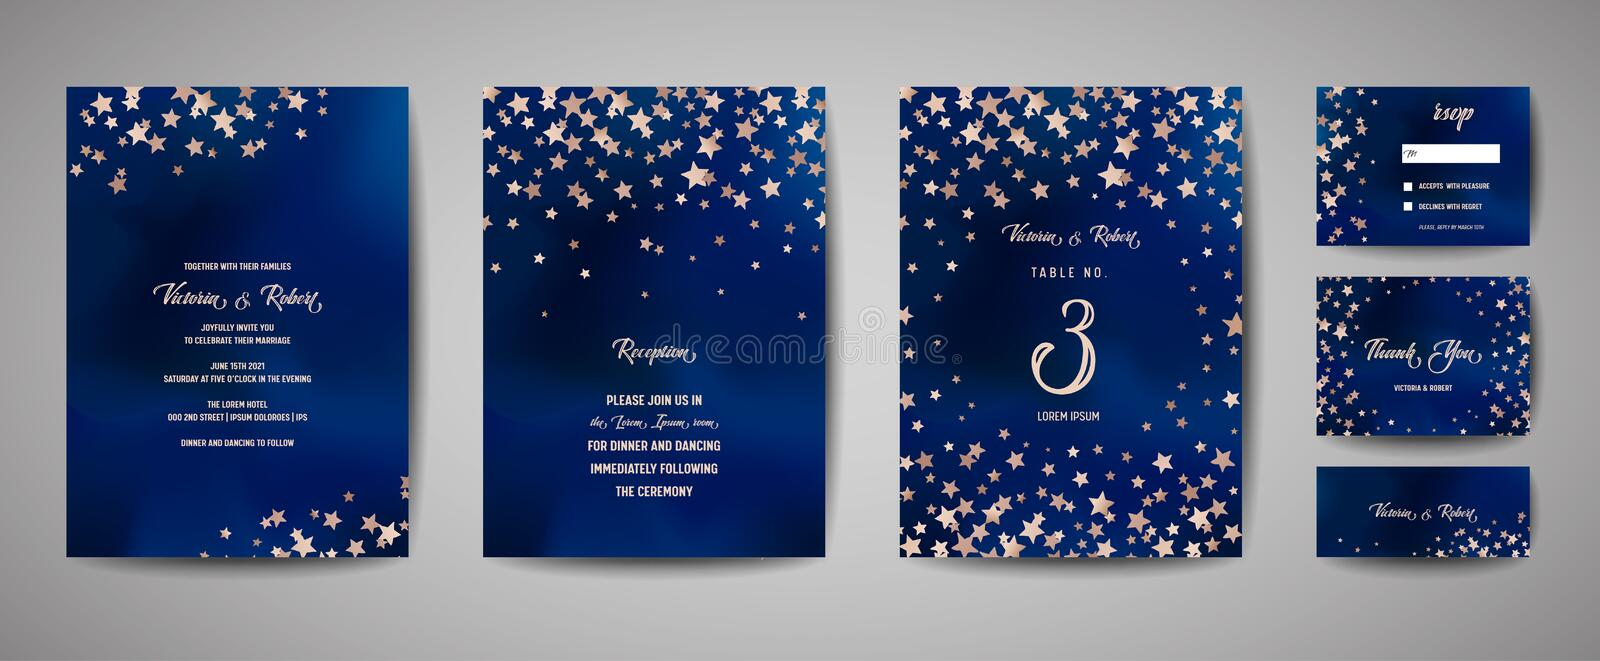 Save the date vector illustration with night starry sky, wedding party star celestial royalty free illustration